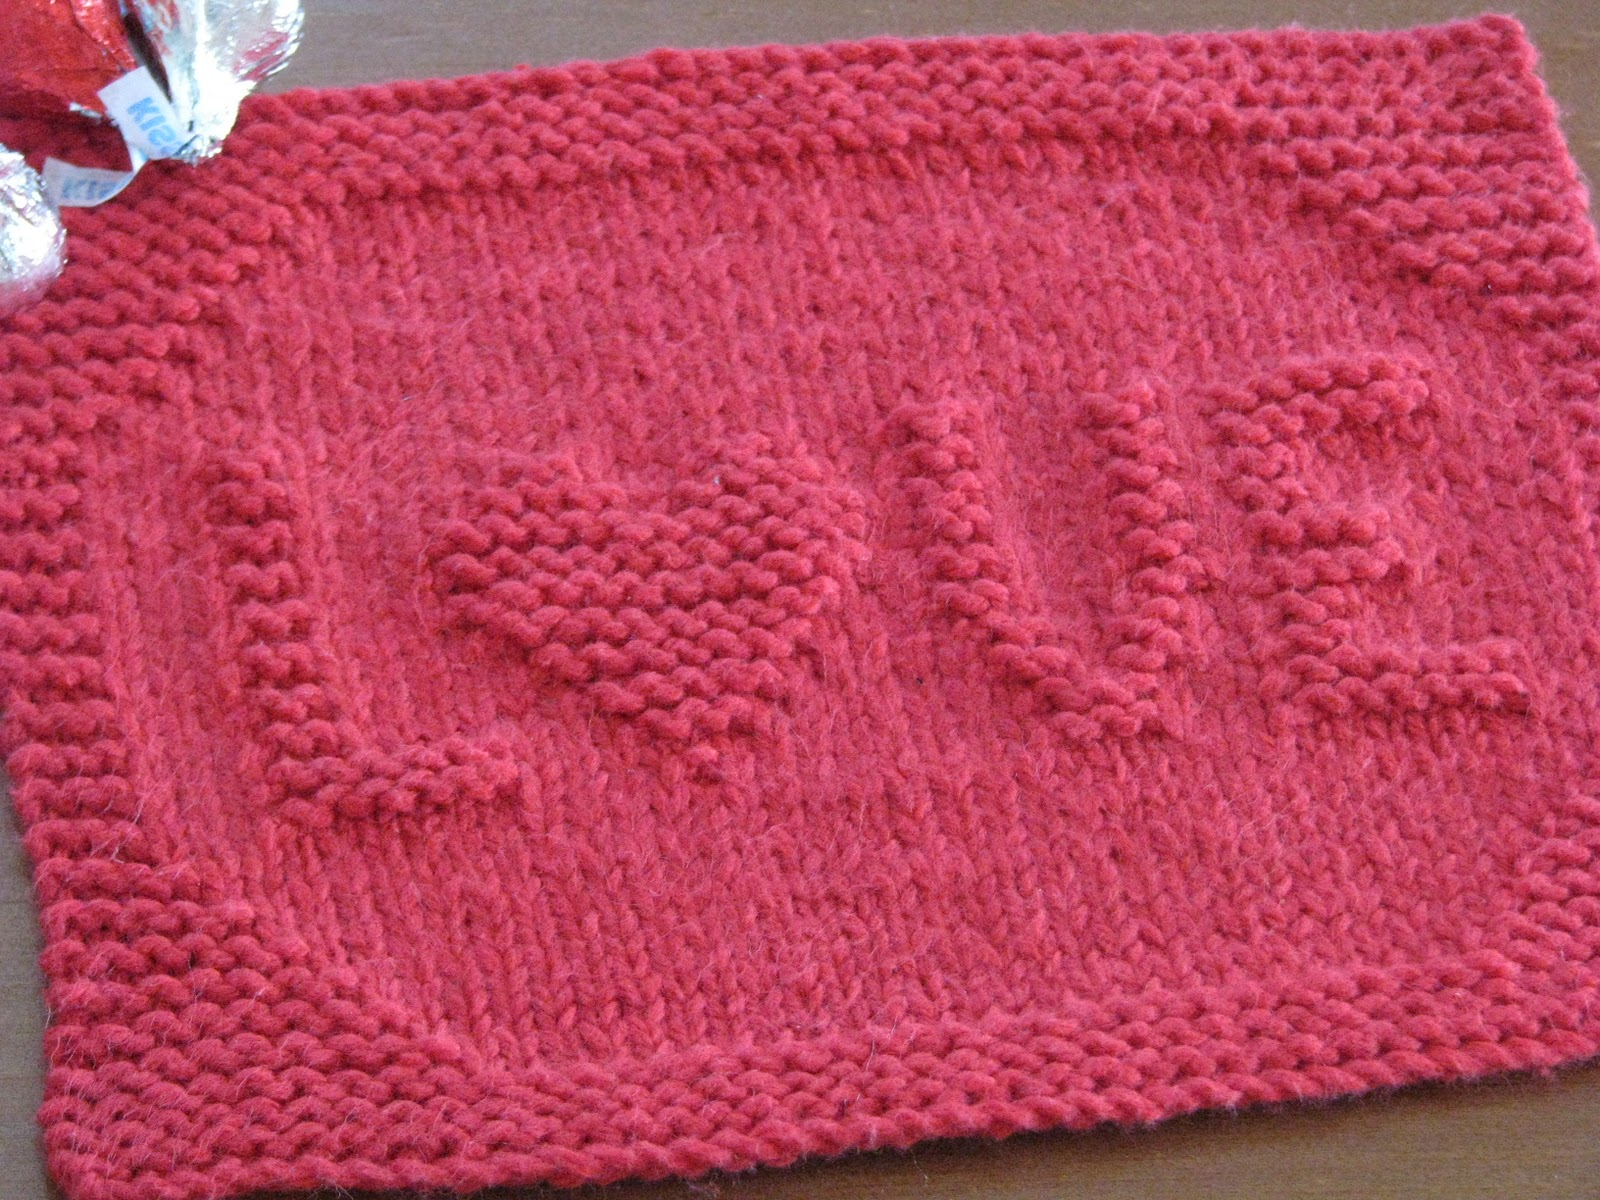 Crafty Knitting Patterns : One Crafty Mama: LOVE Dishcloth